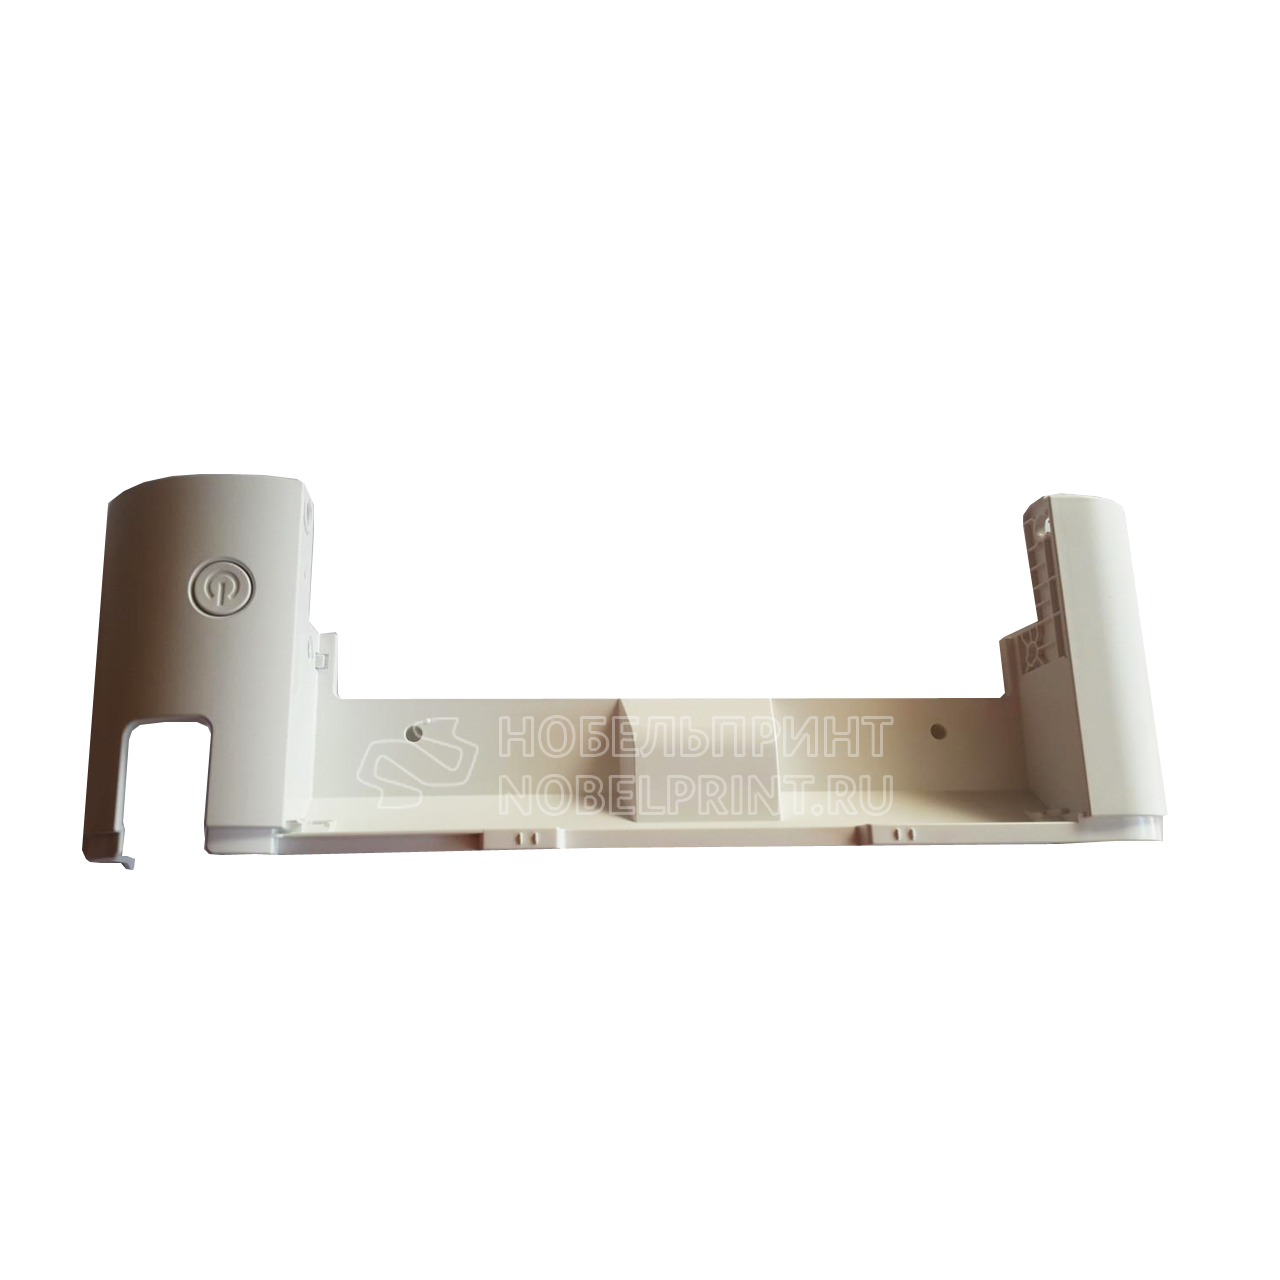 Kyocera PARTS COVER FRONT ASSY SP 302L294120